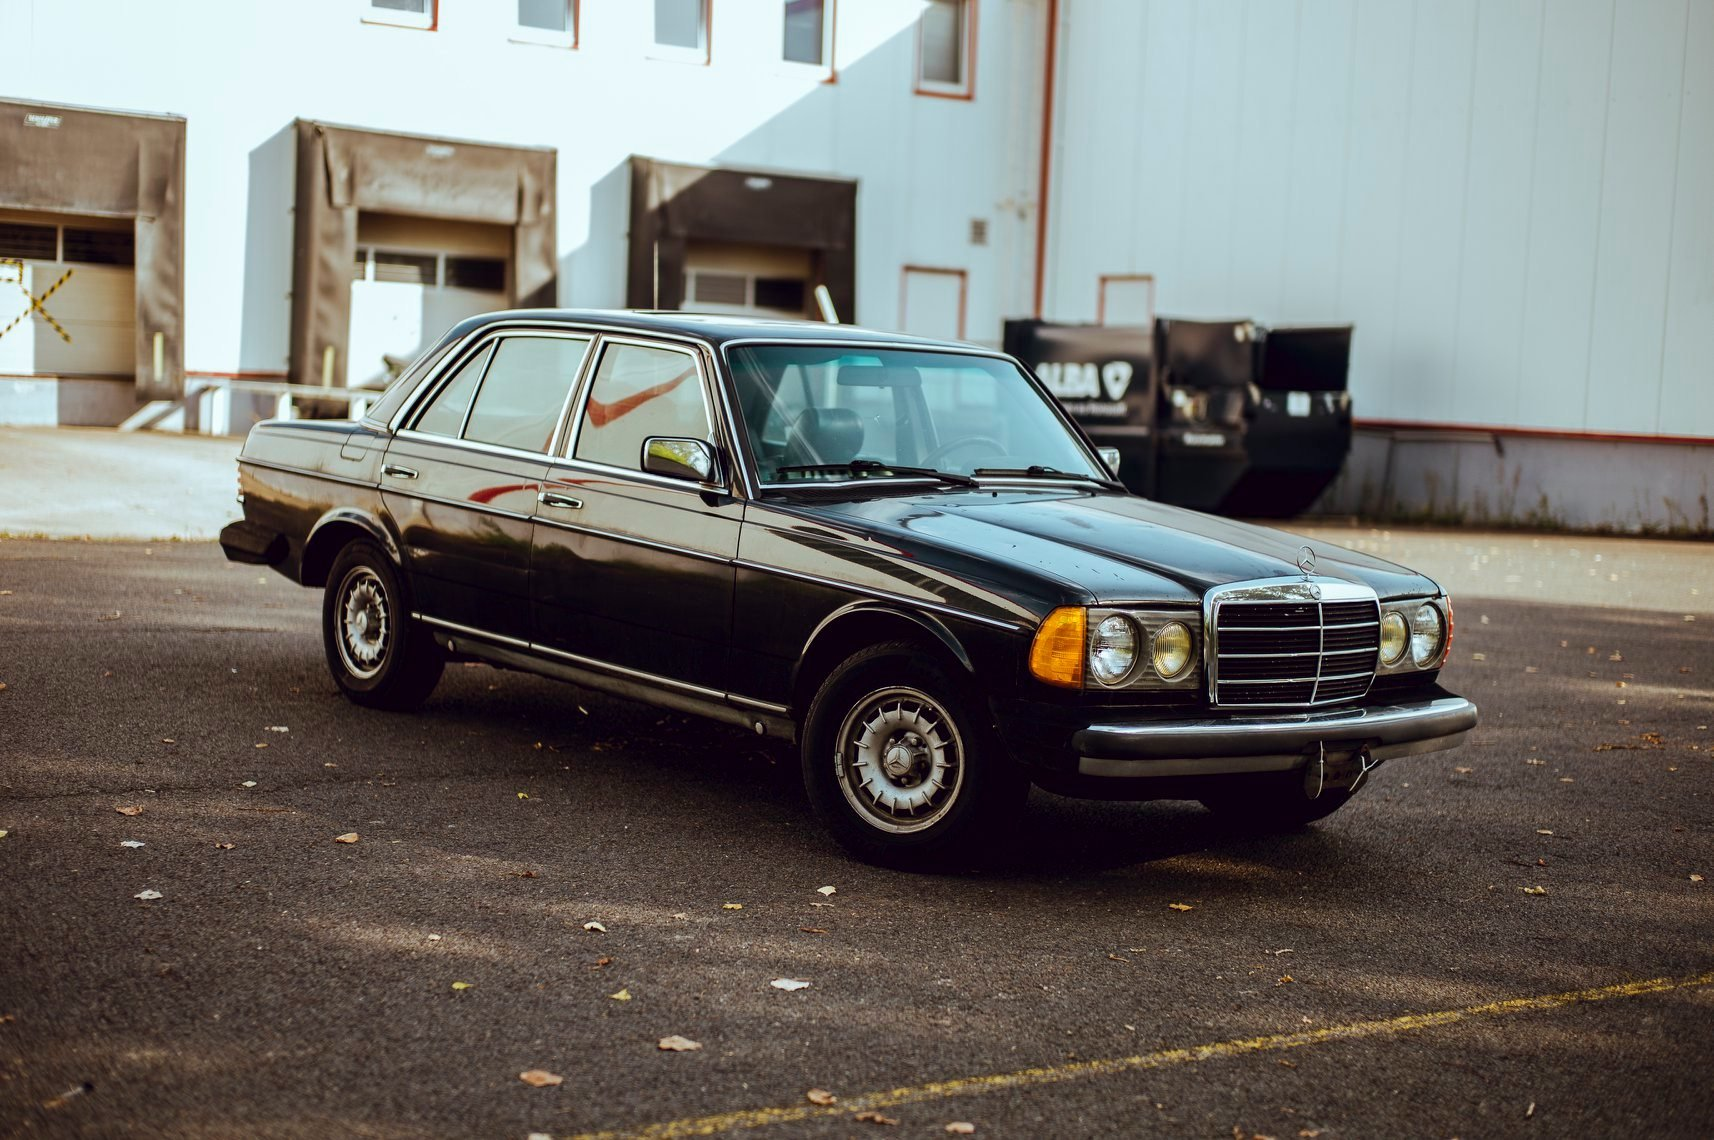 1984 Mercedes-Benz 300 turbo diesel TD W123  For Sale (picture 1 of 6)